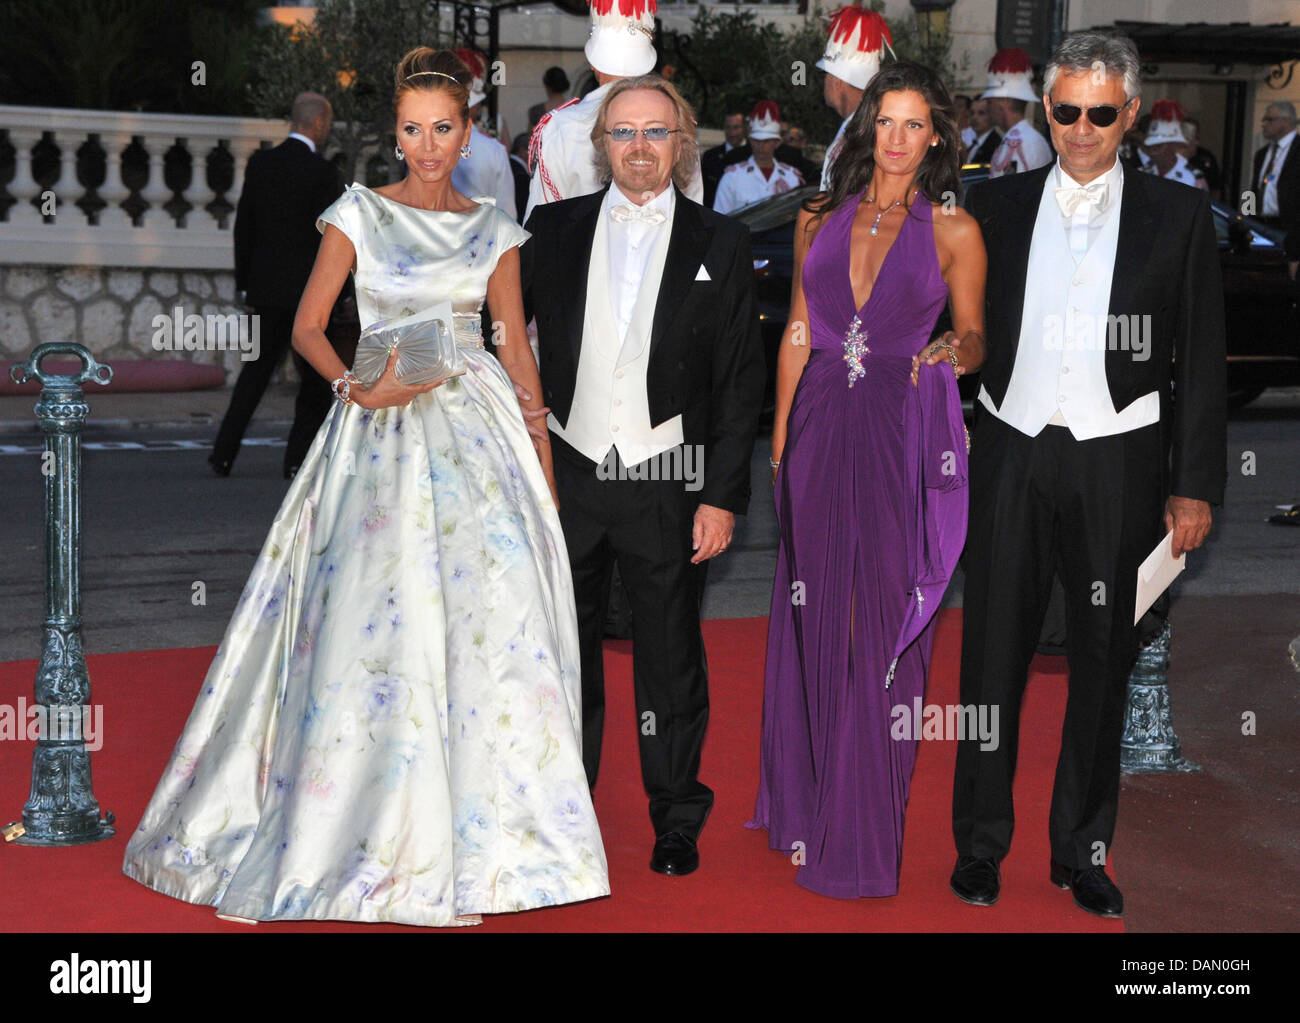 Umberto Tozzi (2ndL) and singer Andrea Bocelli (R) and their partners attend the official dinner on the Opera terraces Stock Photo